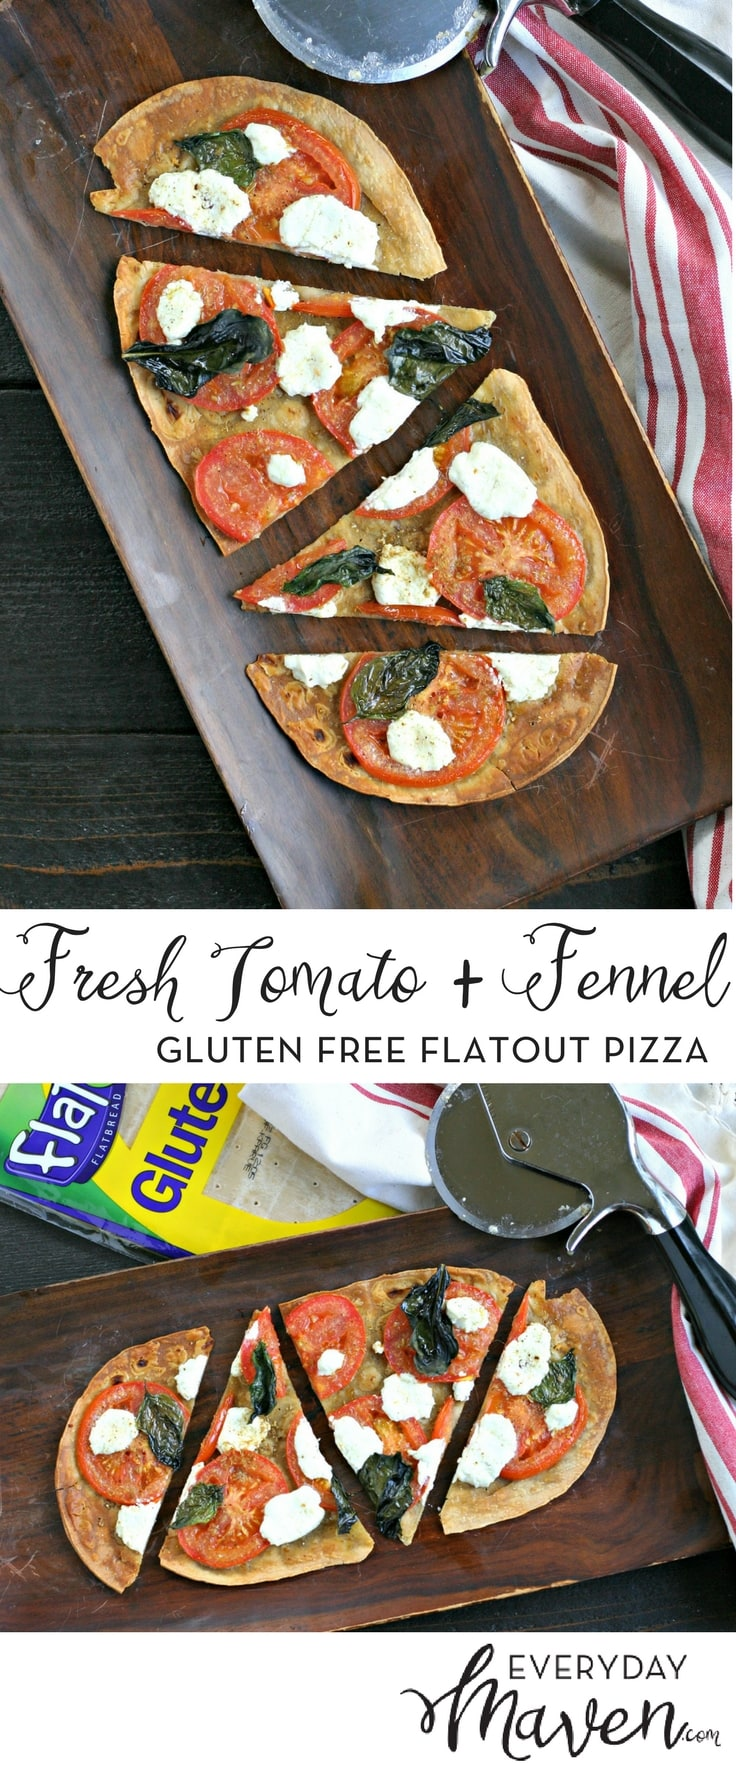 Fresh Tomato Pizza with Crushed Fennel and Goat Cheese. A simple vegetarian personal pizza that is on your  plate in under 15 minutes total time!